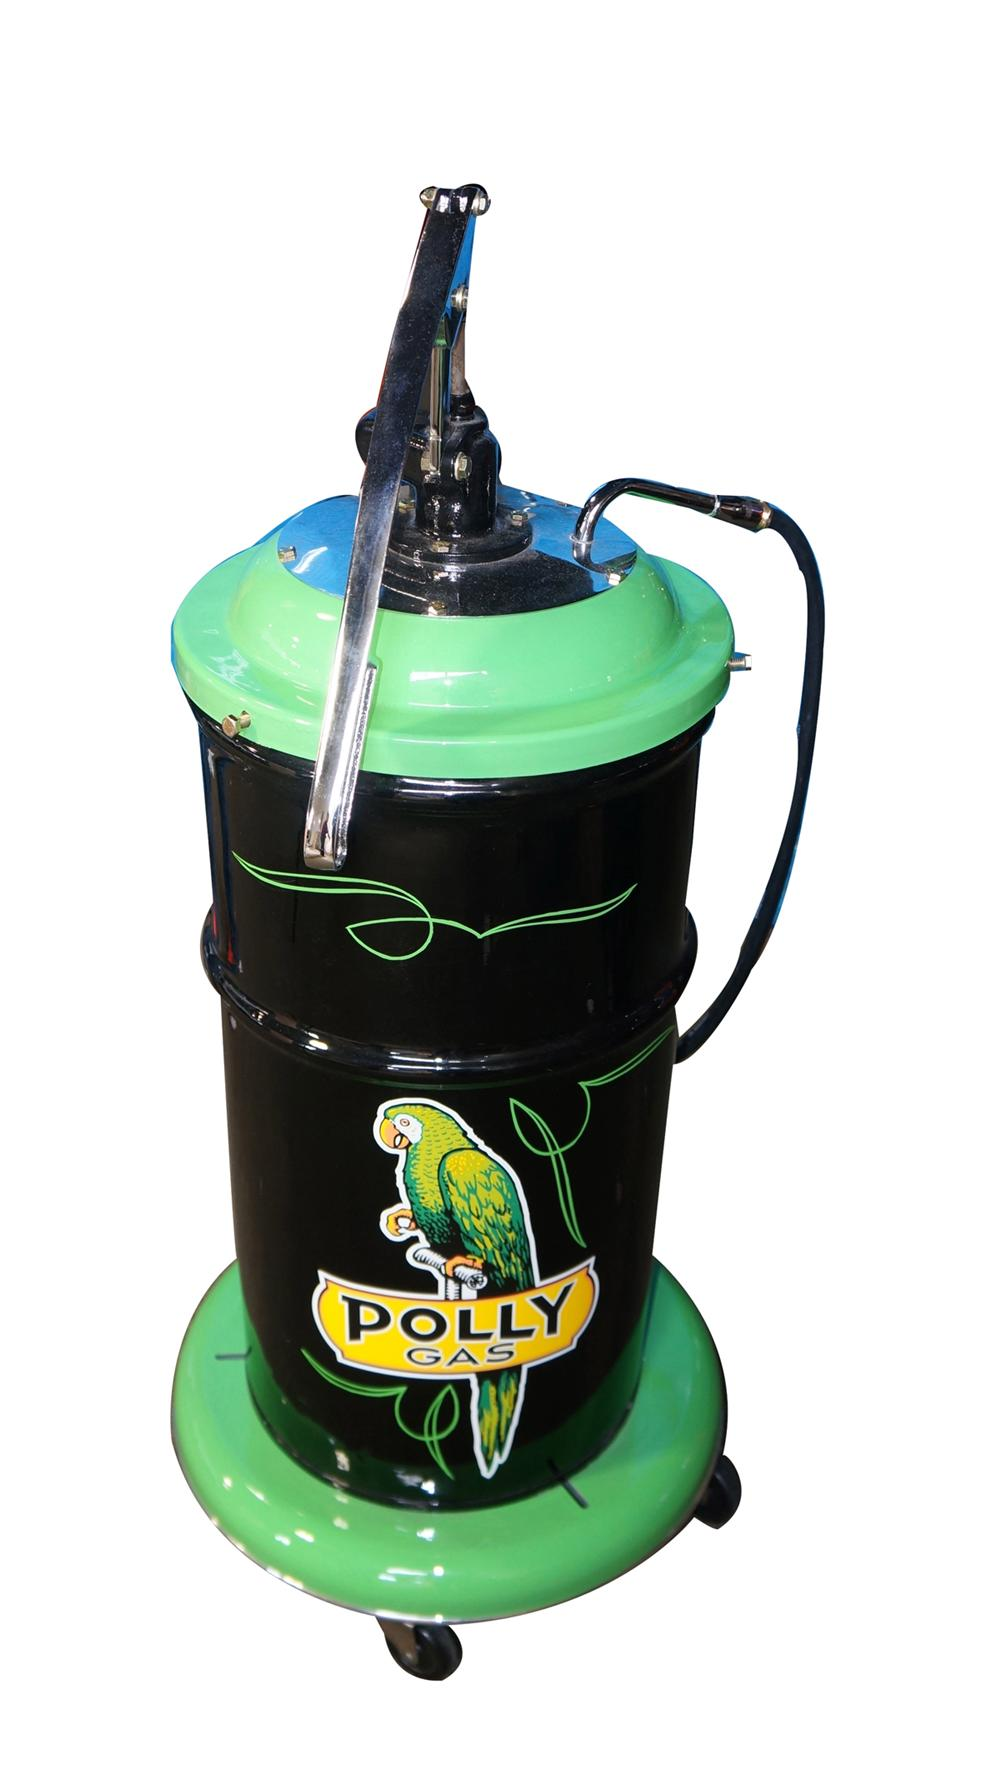 1930's-40's restored Polly Oil 25 gallon service department hand pump greaser on wheels. - Front 3/4 - 170881